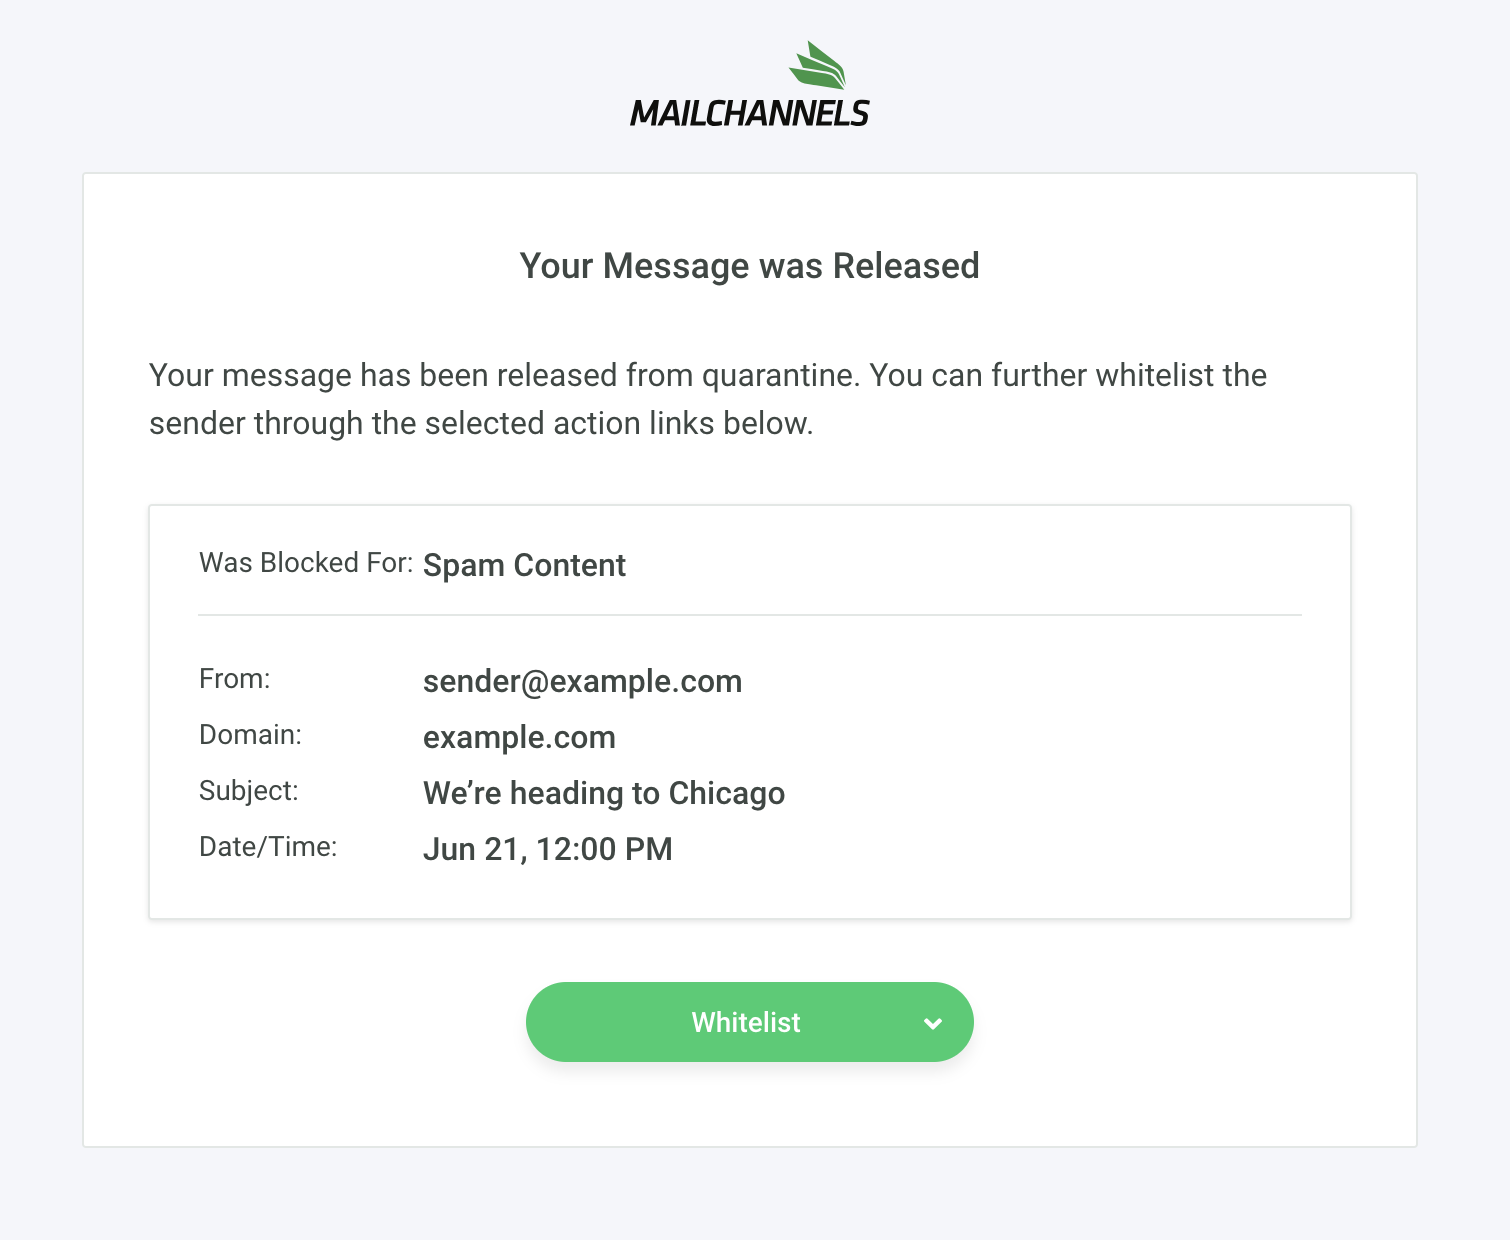 Release message